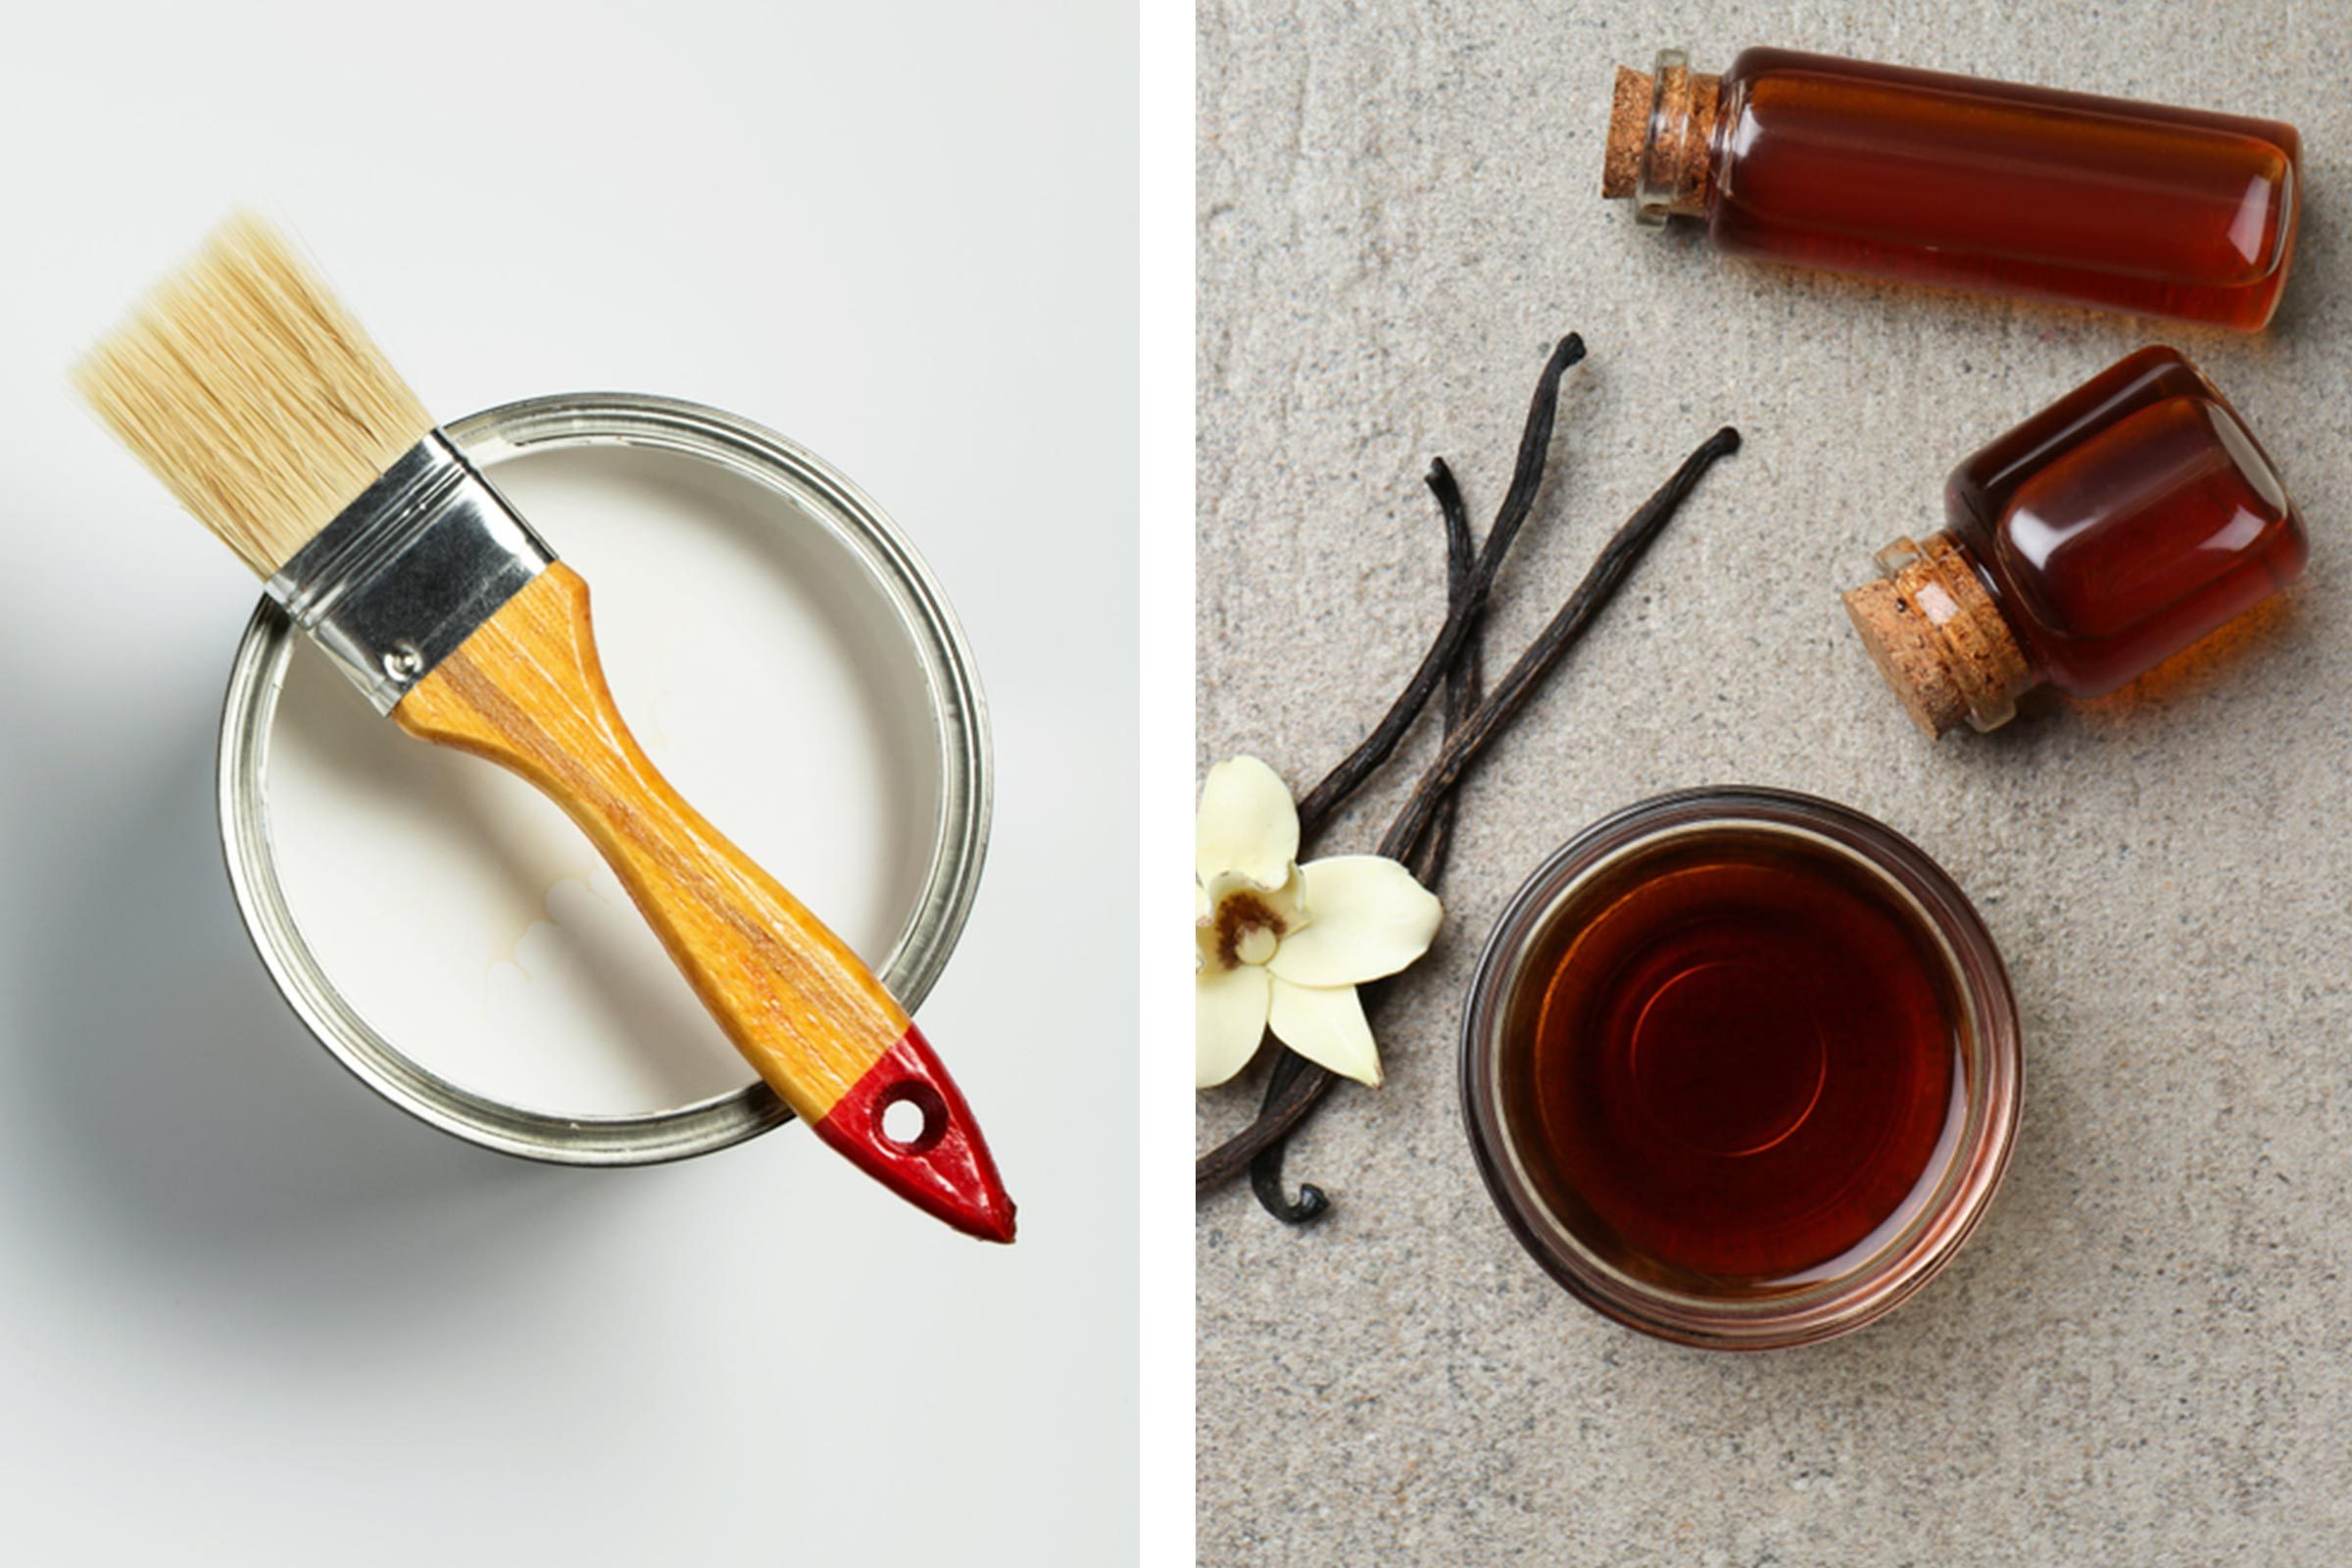 Slide 6 of 21: Although it may be exciting to be adding a fresh coat of paint to your walls, the accompanying odor can detract from the fun. Mix a tablespoon of vanilla extract into a gallon of paint to make the sharp smell slightly sweeter.